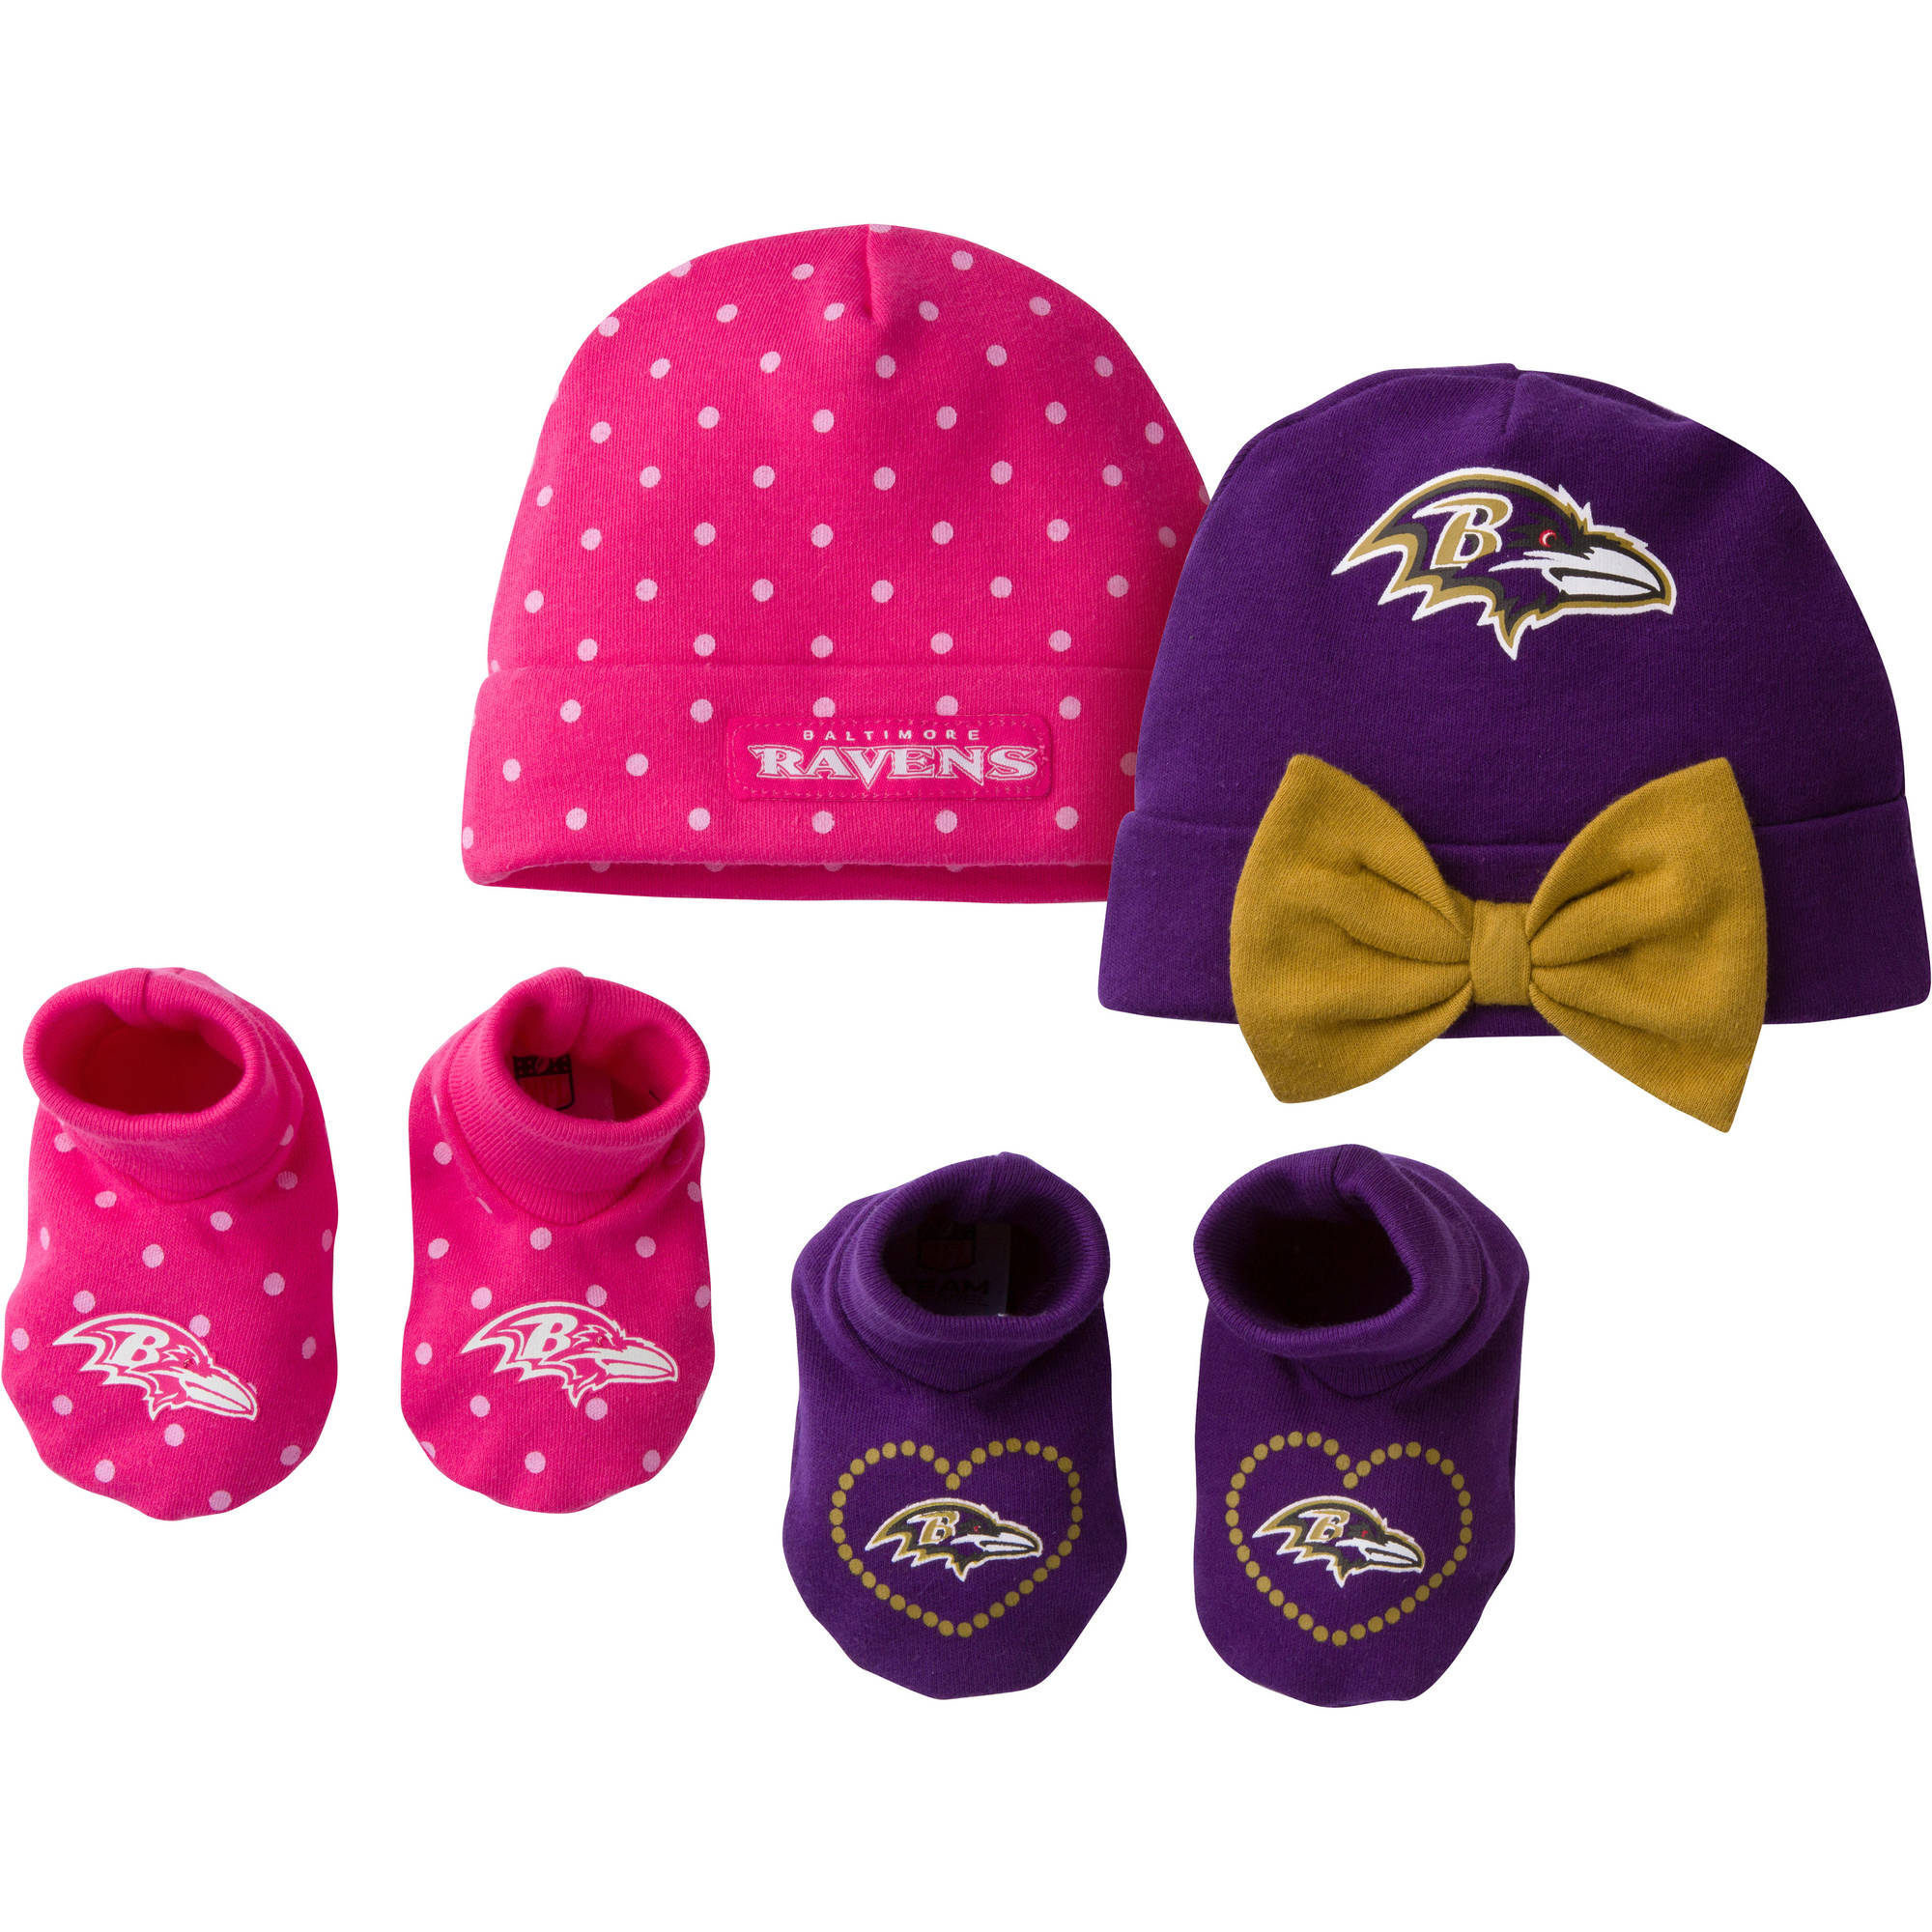 NFL Baltimore Ravens Baby Girls Accessory Set, 2 Caps and 2 Booties, 4-Piece